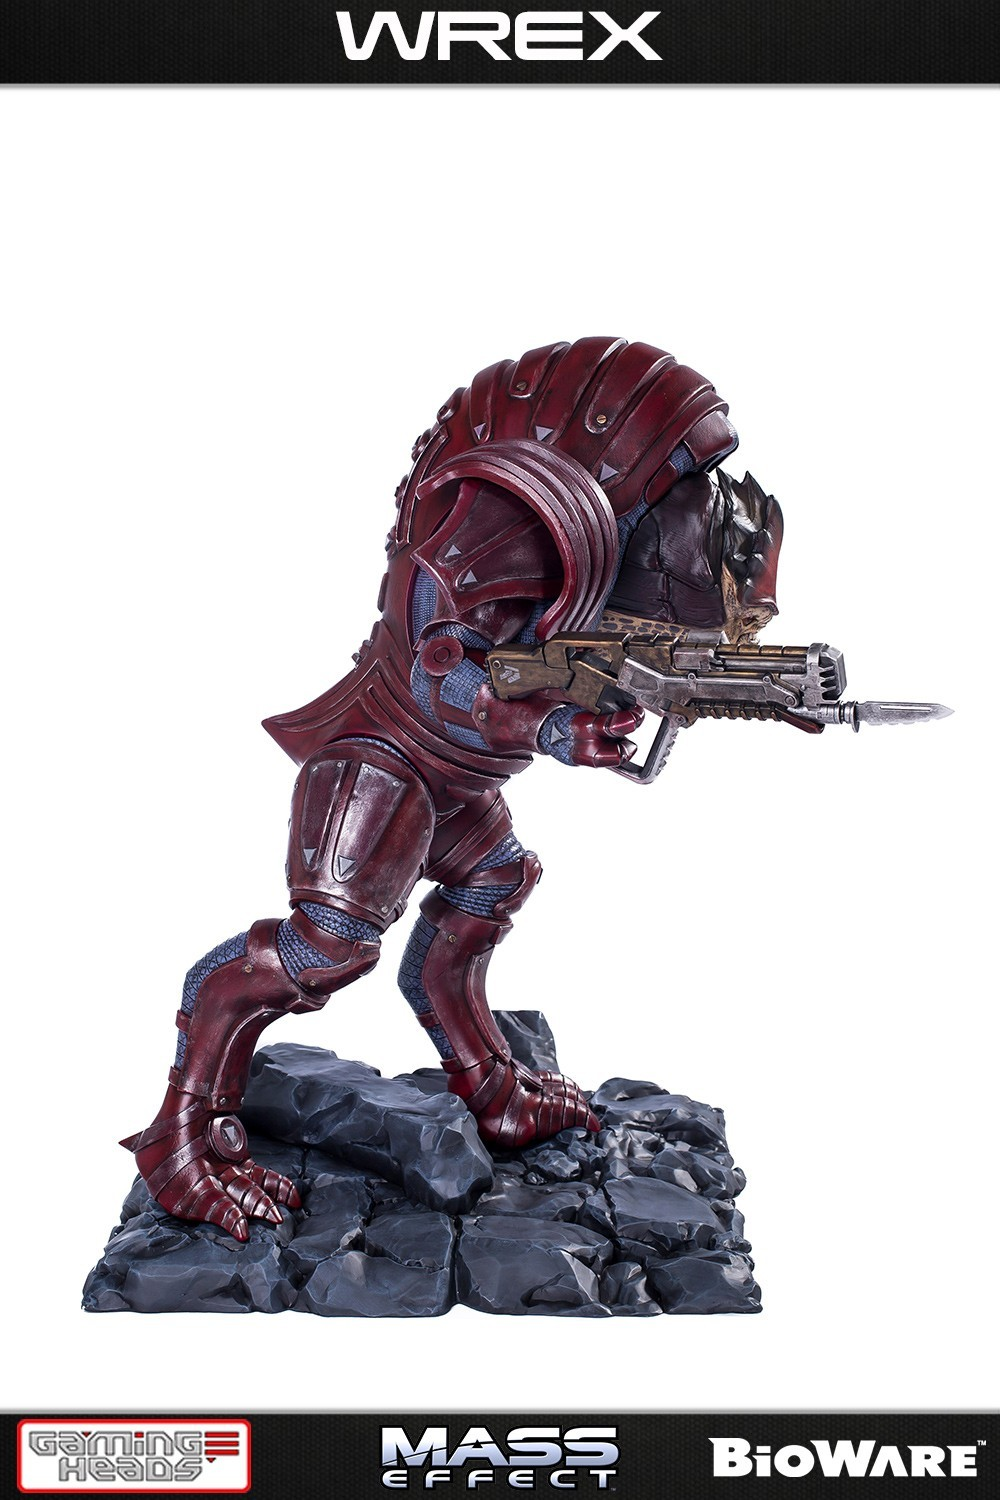 Mass Effect - Wrex 1:4 Scale Statue